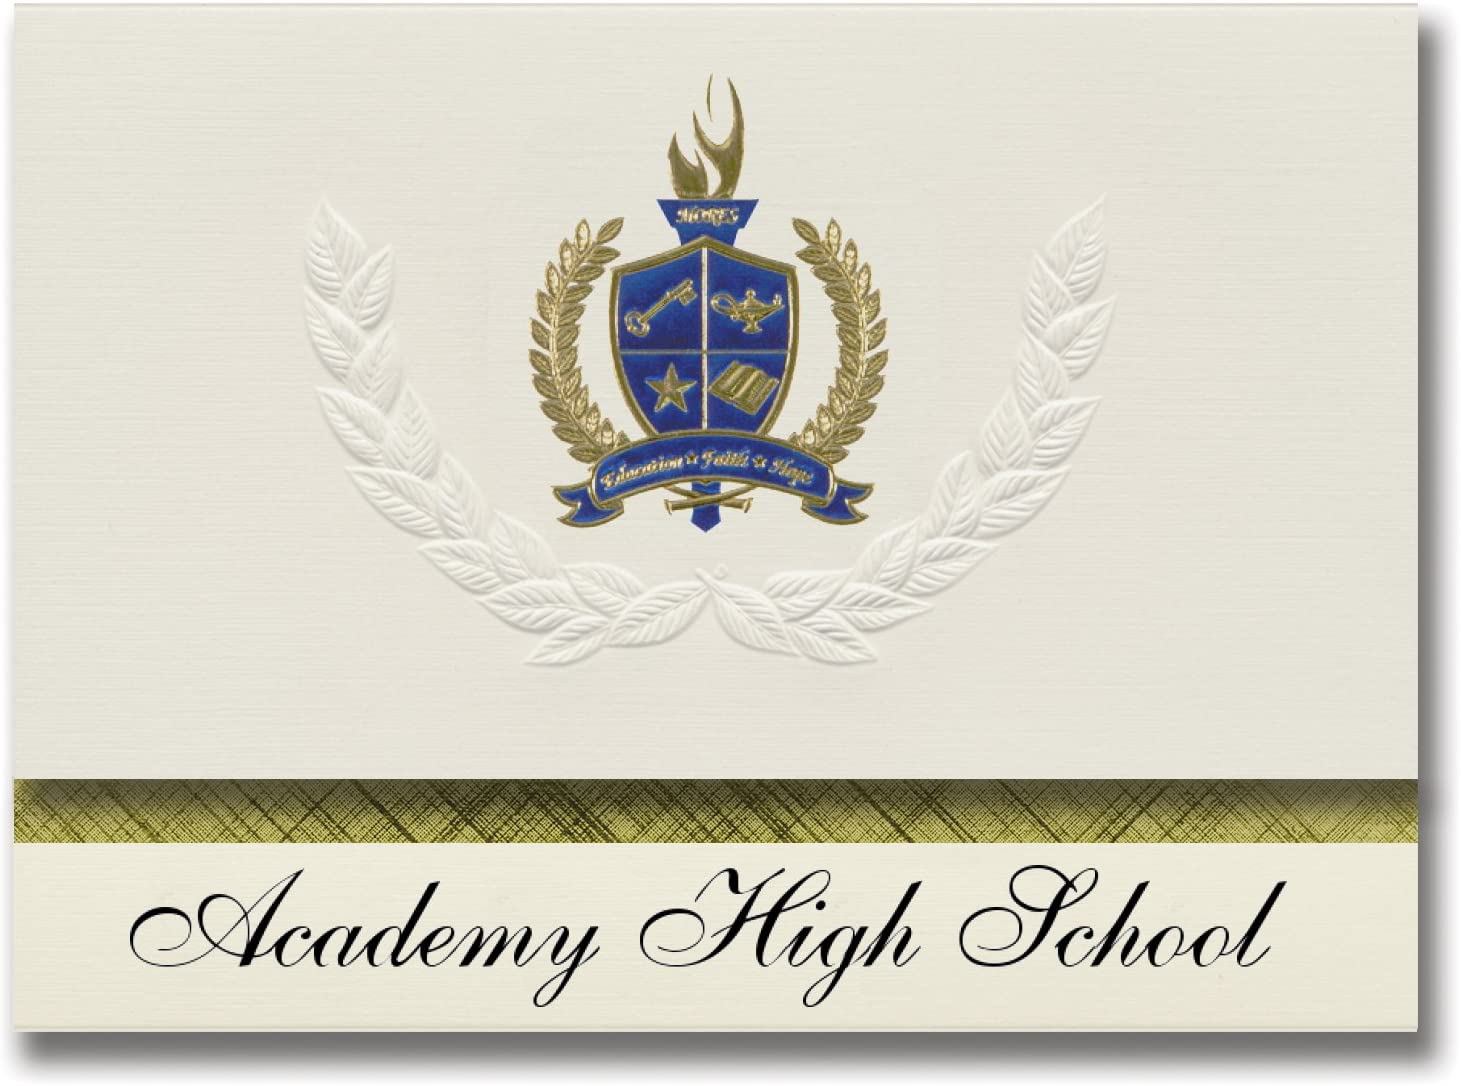 Signature Announcements Academy High School (Thornton, CO) Graduation Announcements, Presidential style, Basic package of 25 with Gold & Blue Metallic Foil seal